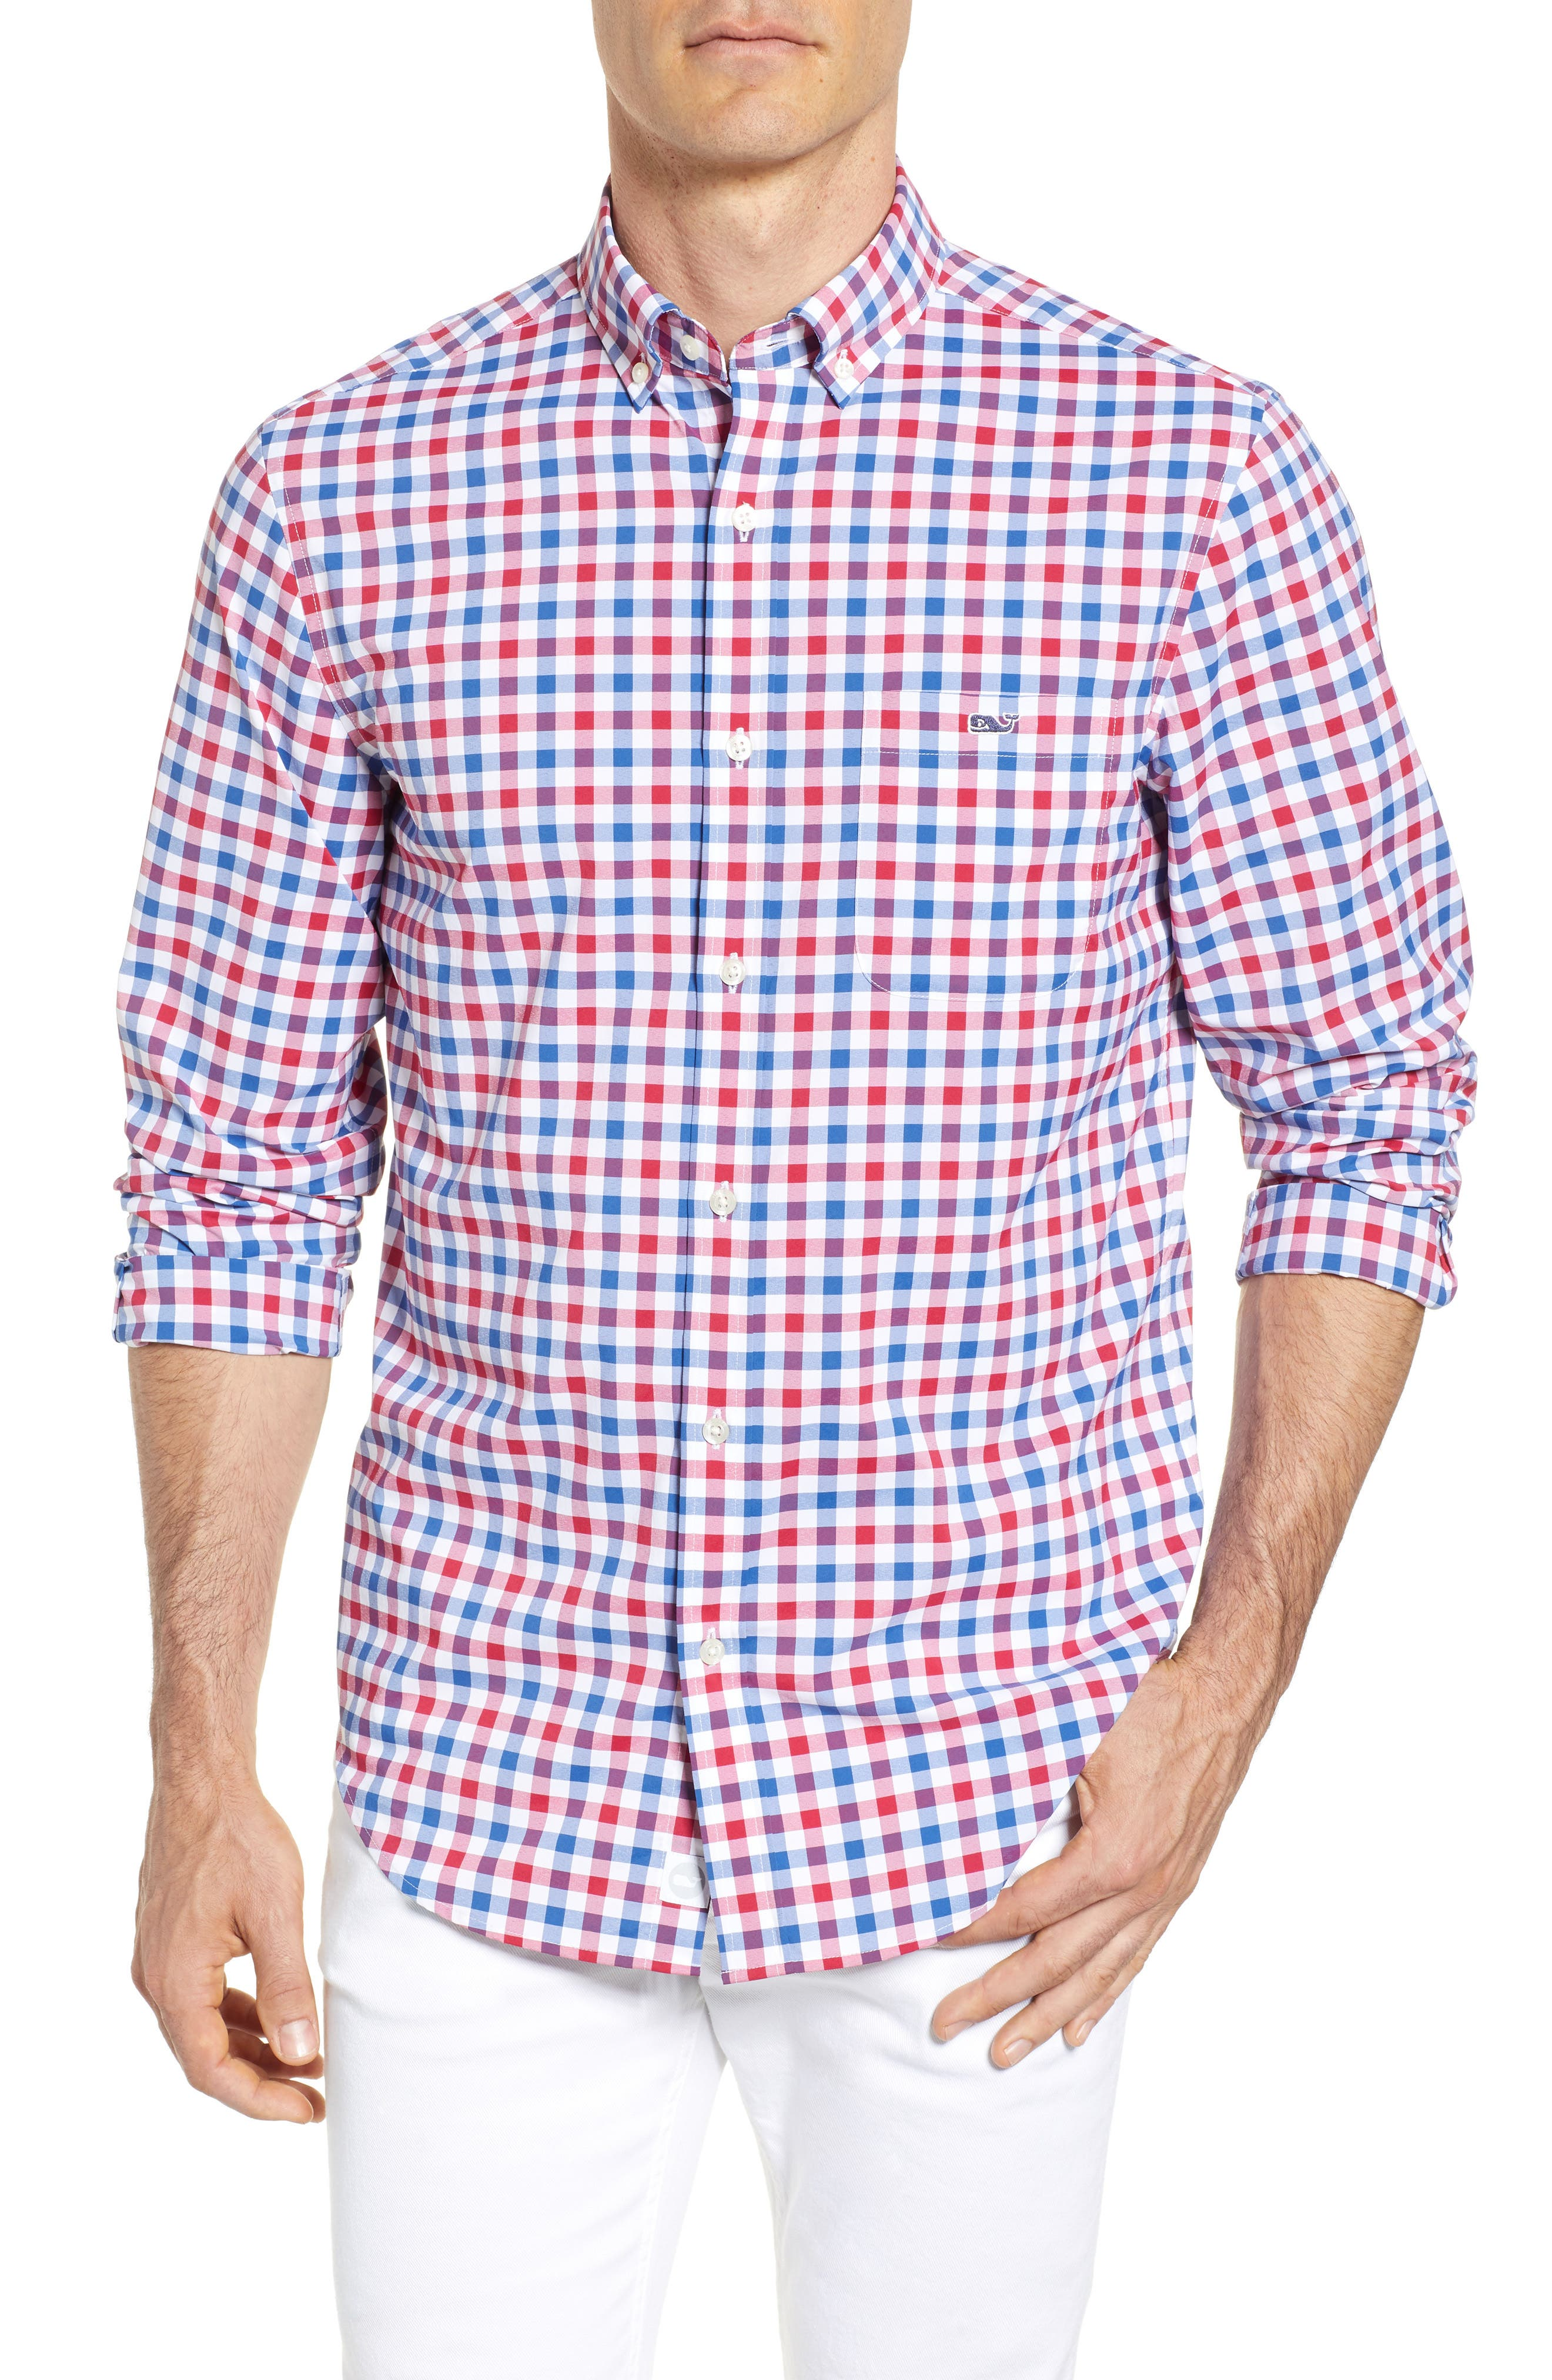 Gull Island Classic Fit Gingham Sport Shirt,                             Main thumbnail 1, color,                             Captains Blue